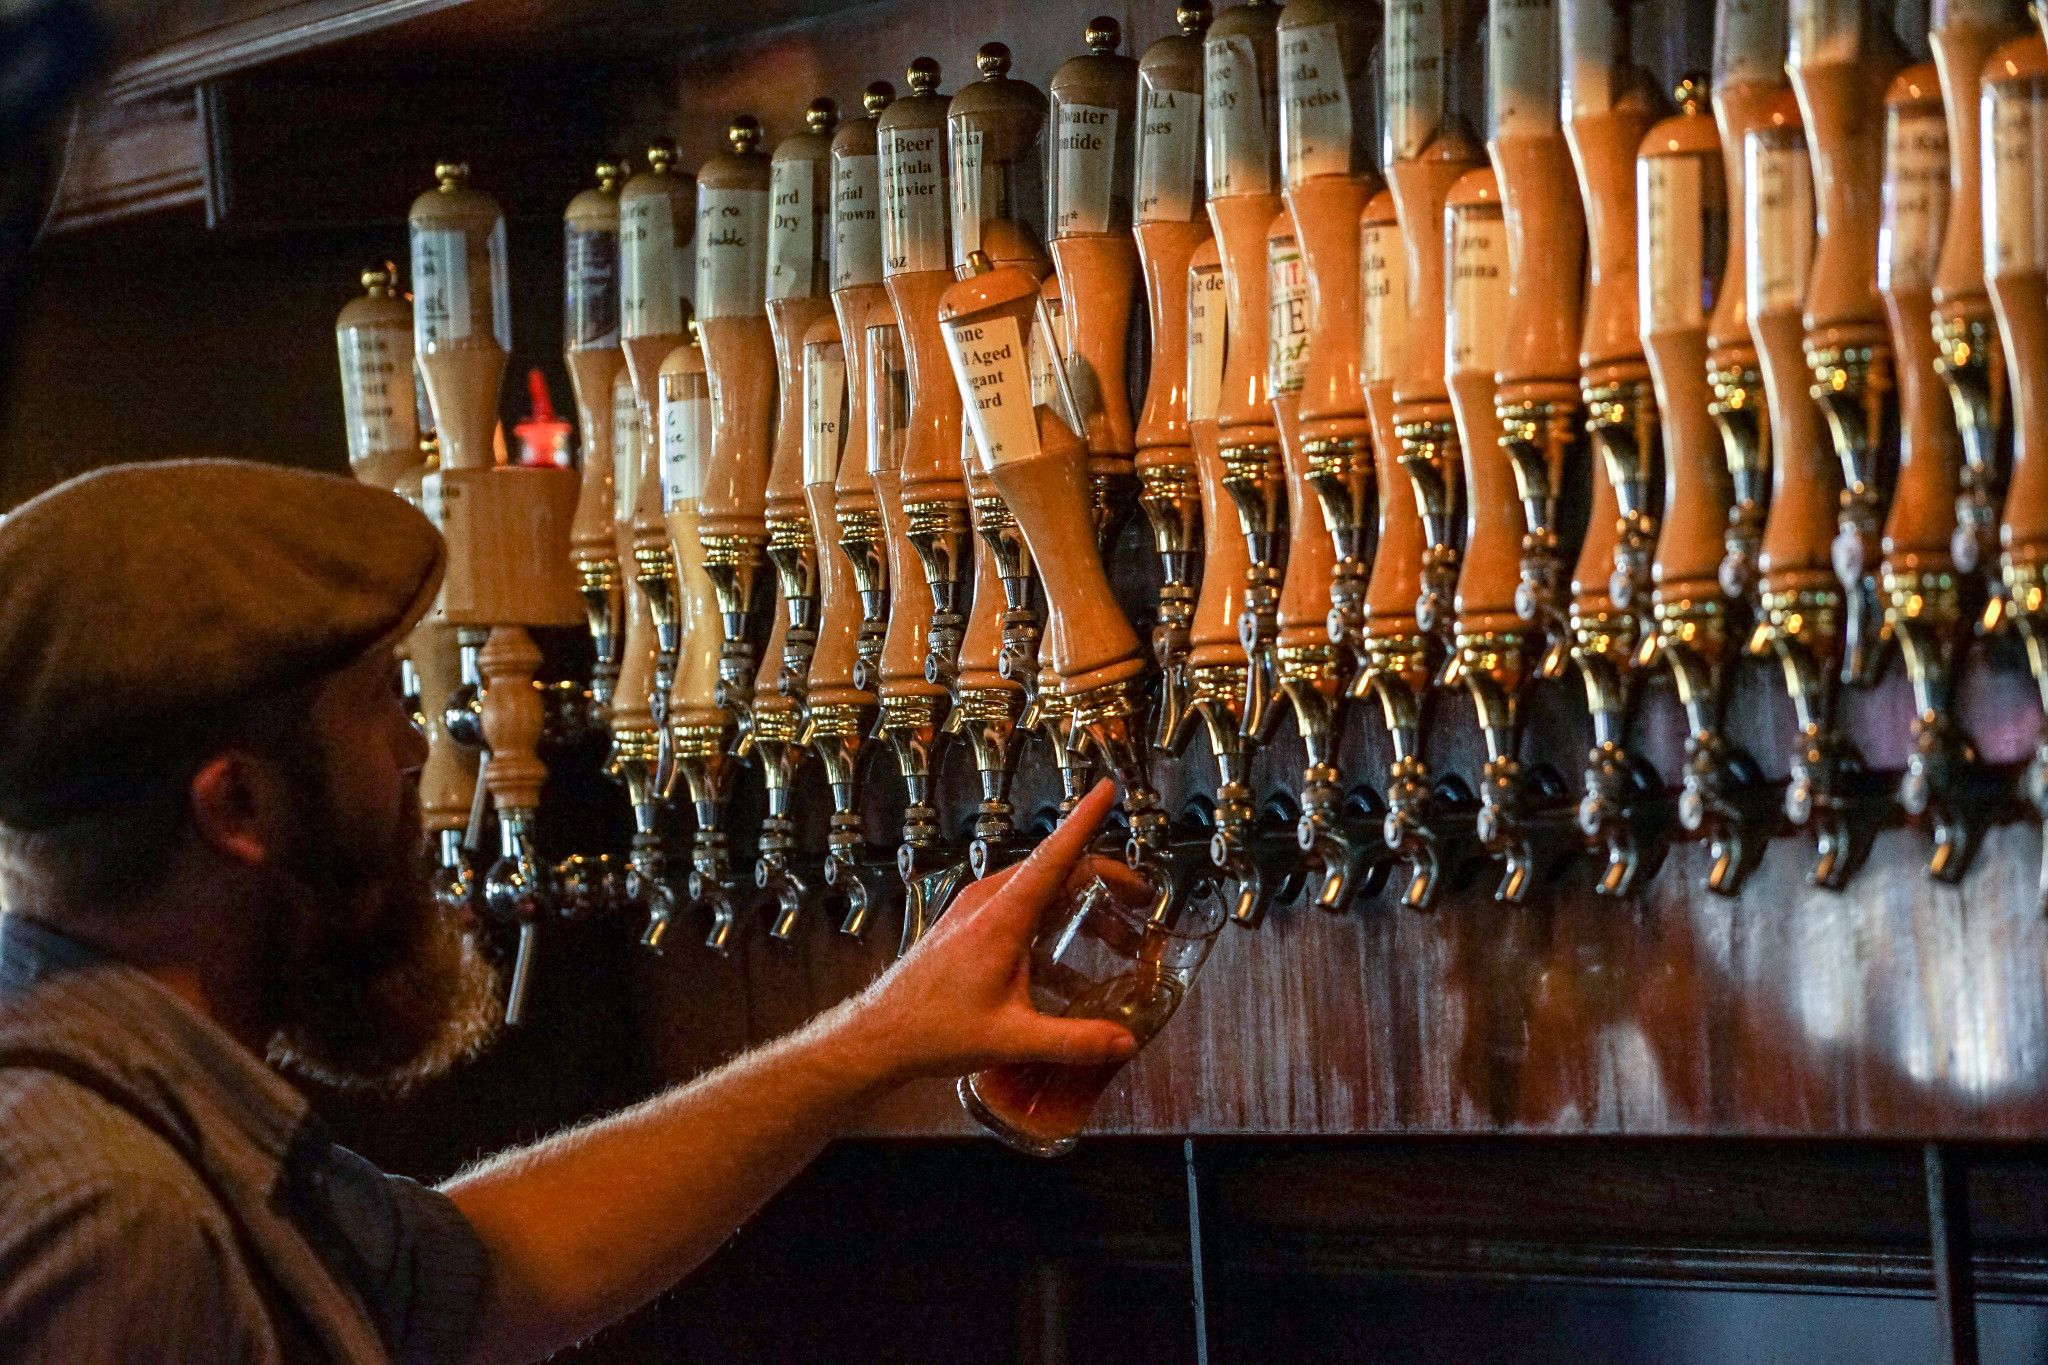 The pub carries a large selection of beer on draft using a recently renovated system. (Photo: Paul Broussard)